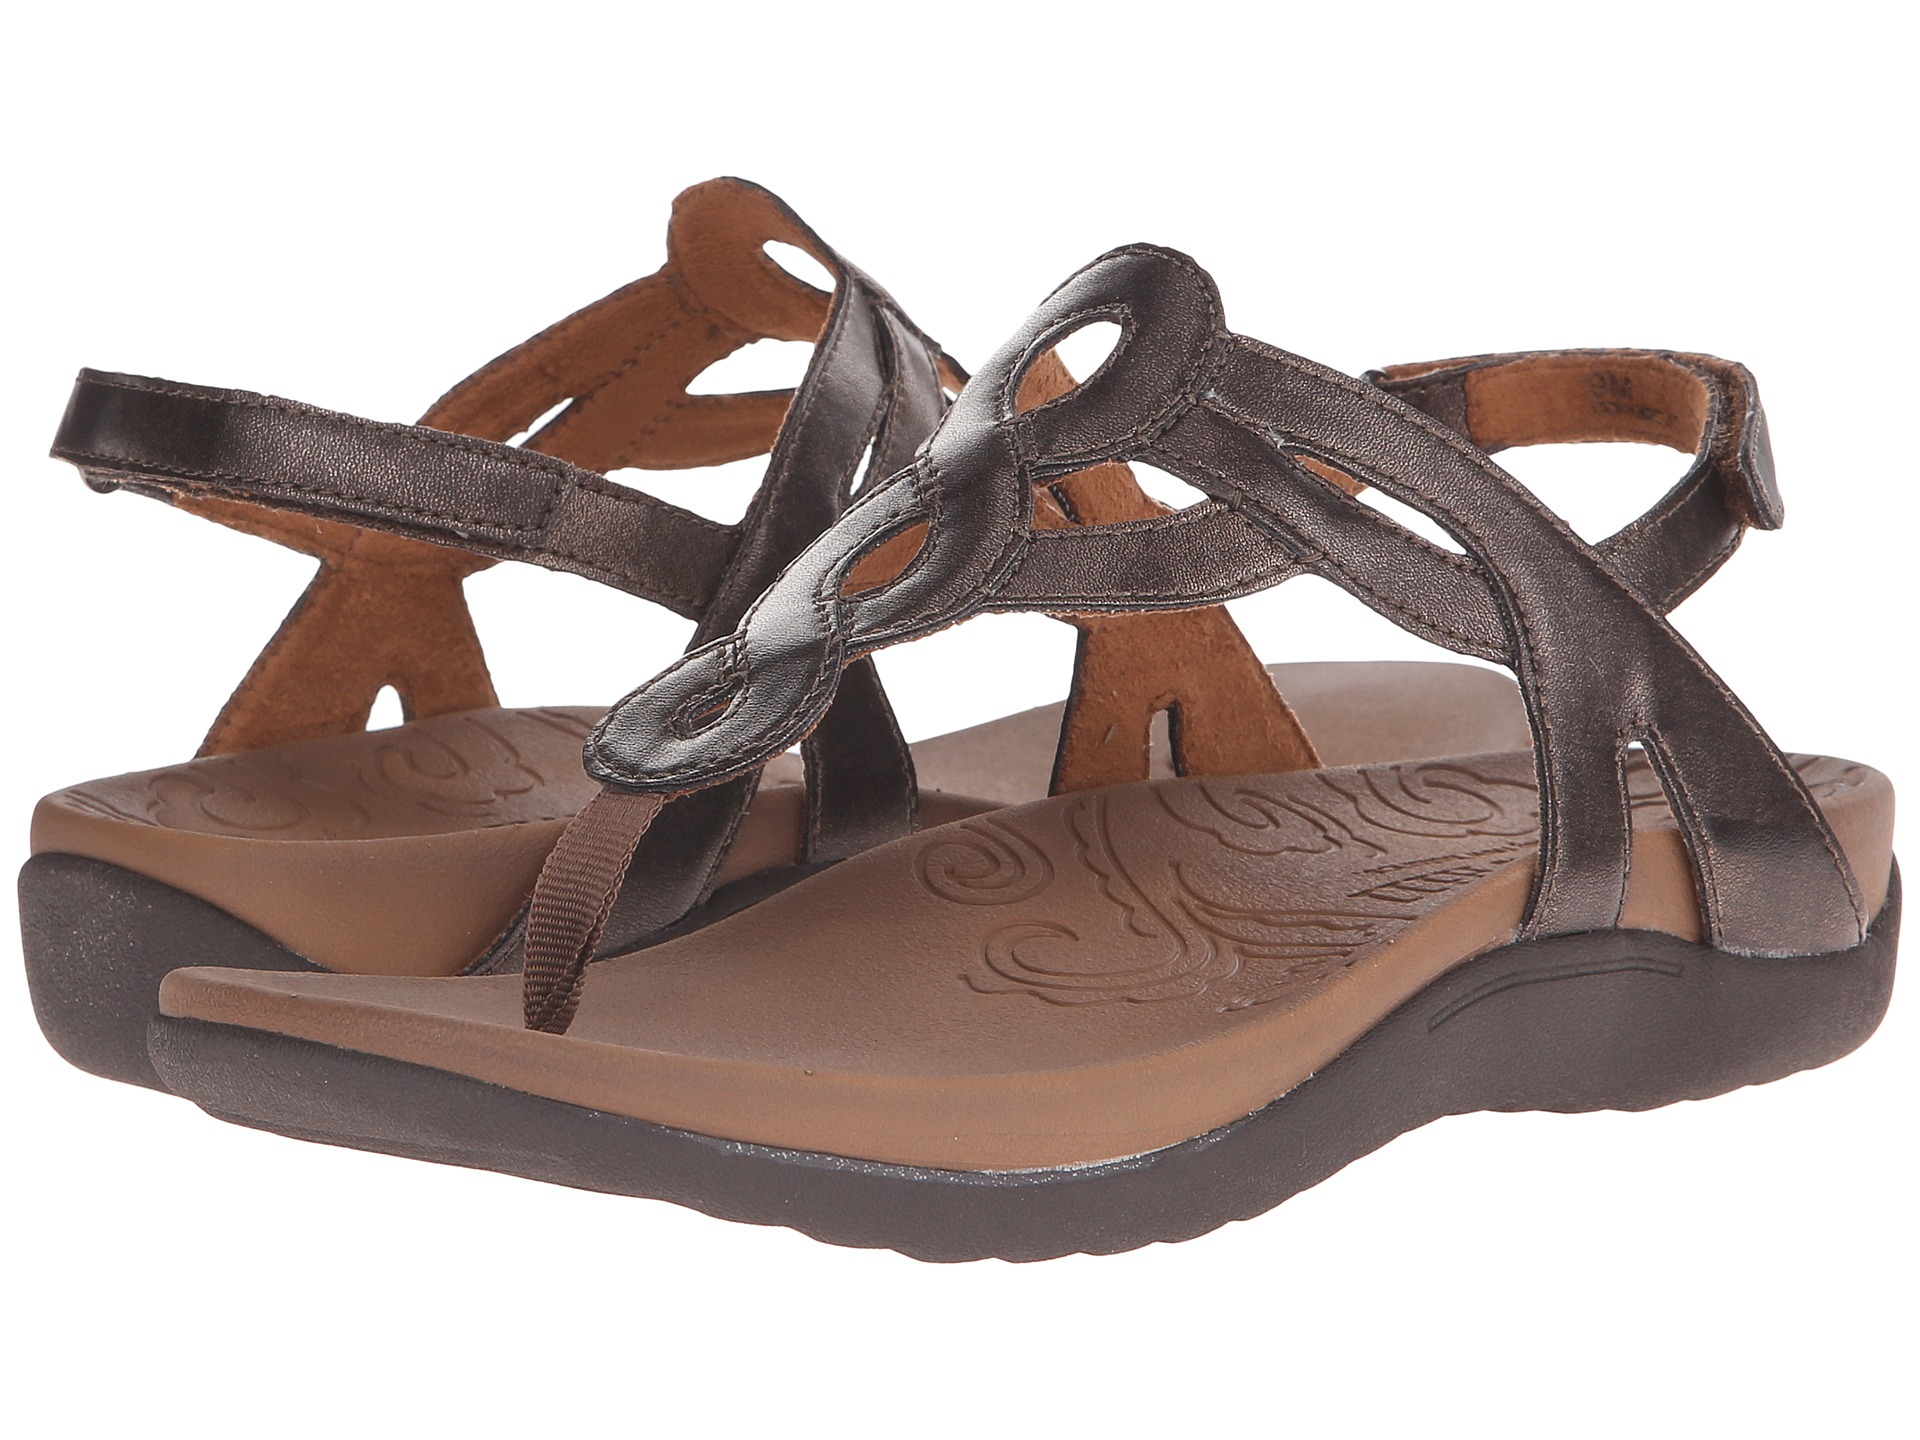 Womens sandals with arch support - Womens Sandals With Arch Support 42